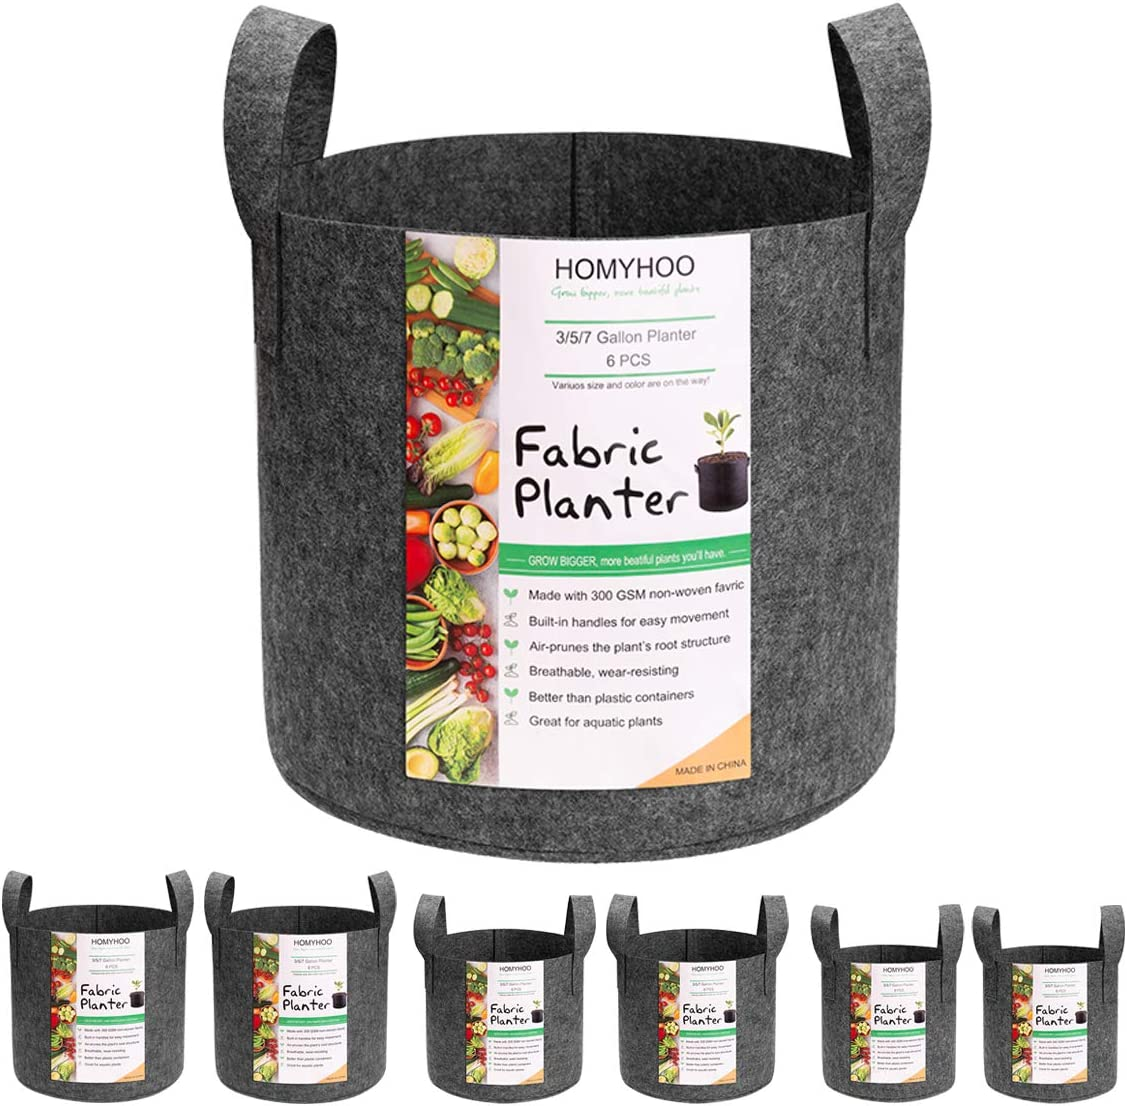 6-Pack Plant Grow Bags, Thickened Nonwoven Aeration Fabric Planter Pot 3/5/7 Gallon Variety Size with Sturdy Handles for Garden Indoor Plants